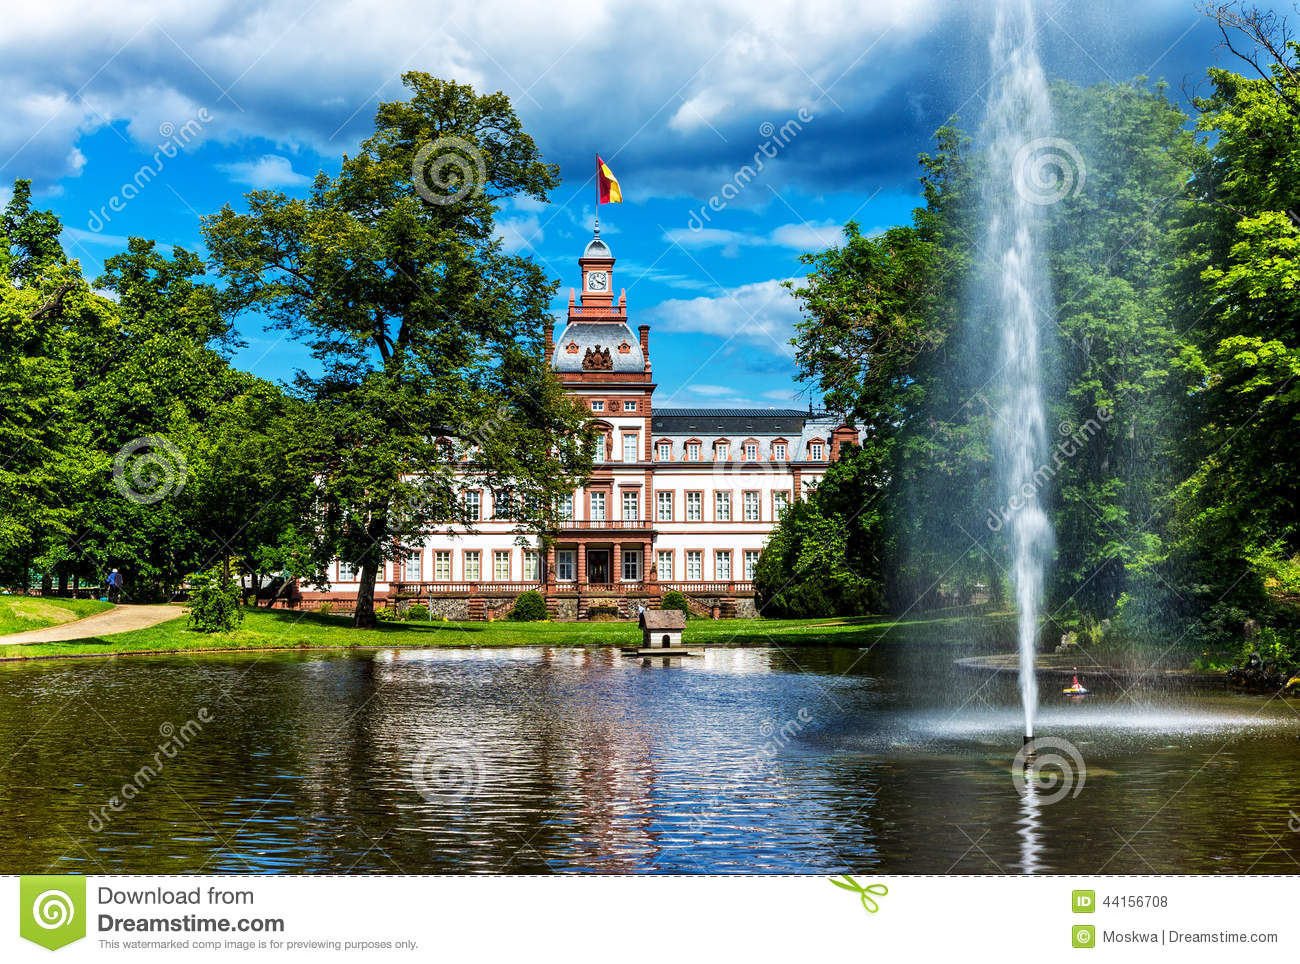 Hanau am Main Germany  city images : ... on the banks of river Main in Hanau, near Frankfurt am Main, Germany